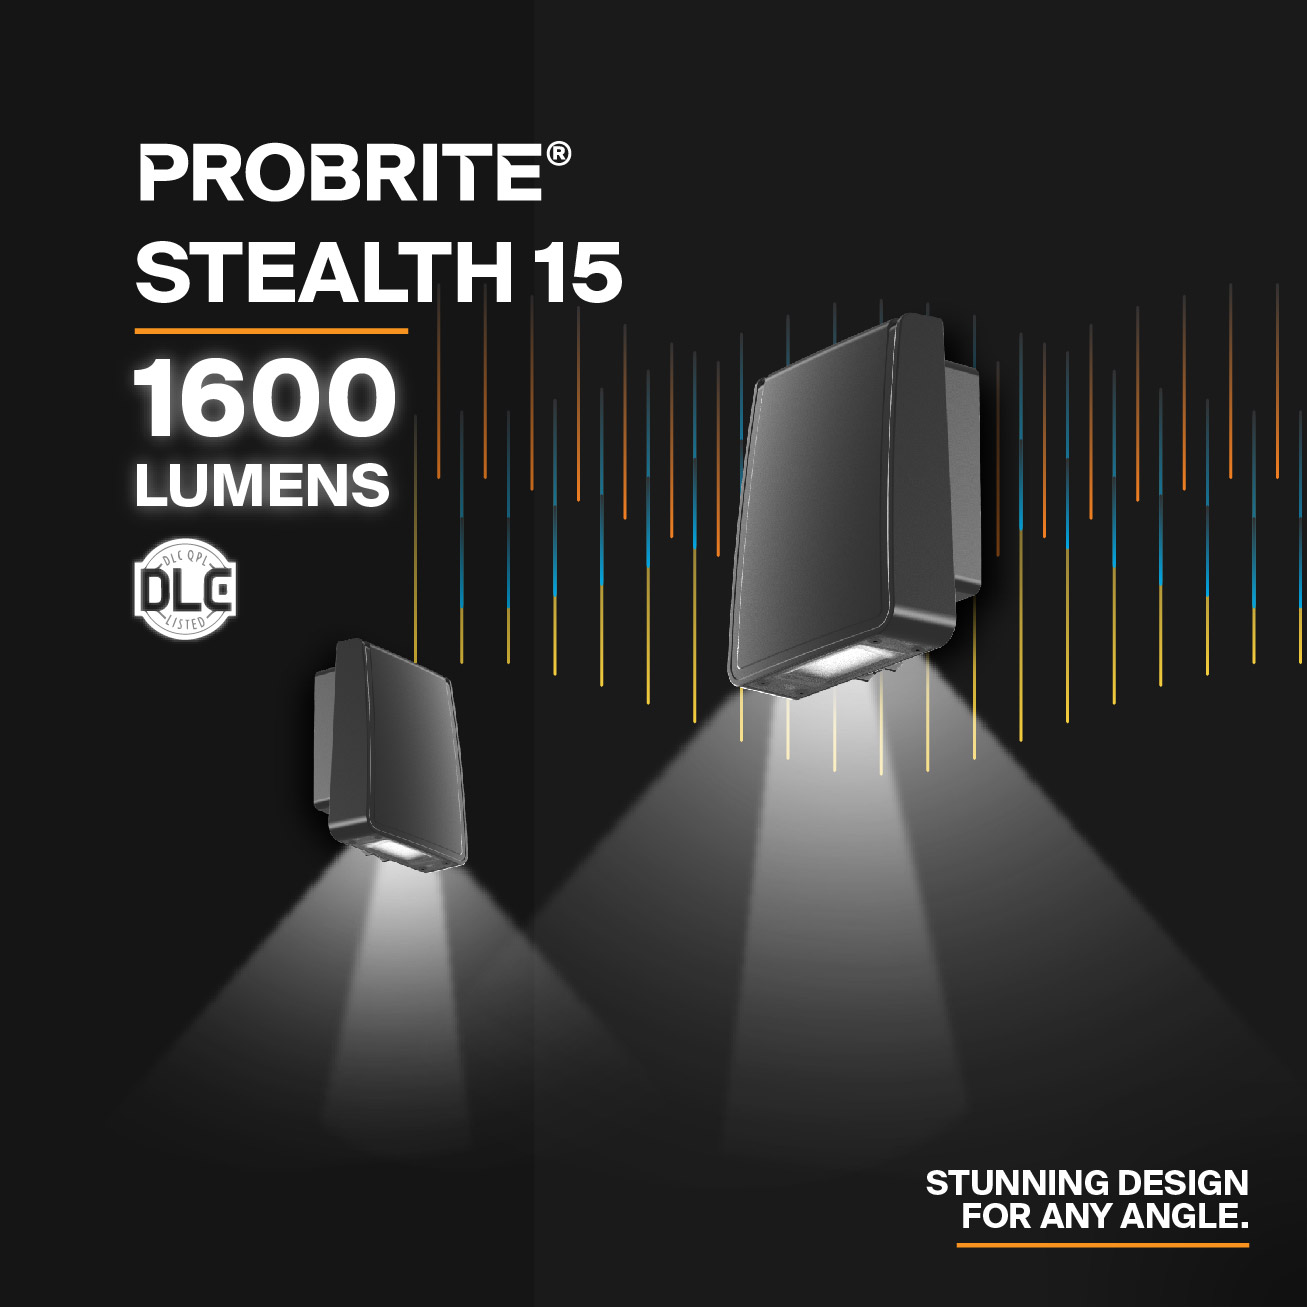 Probrite Sealth15 LED Wall Pack Design and Light